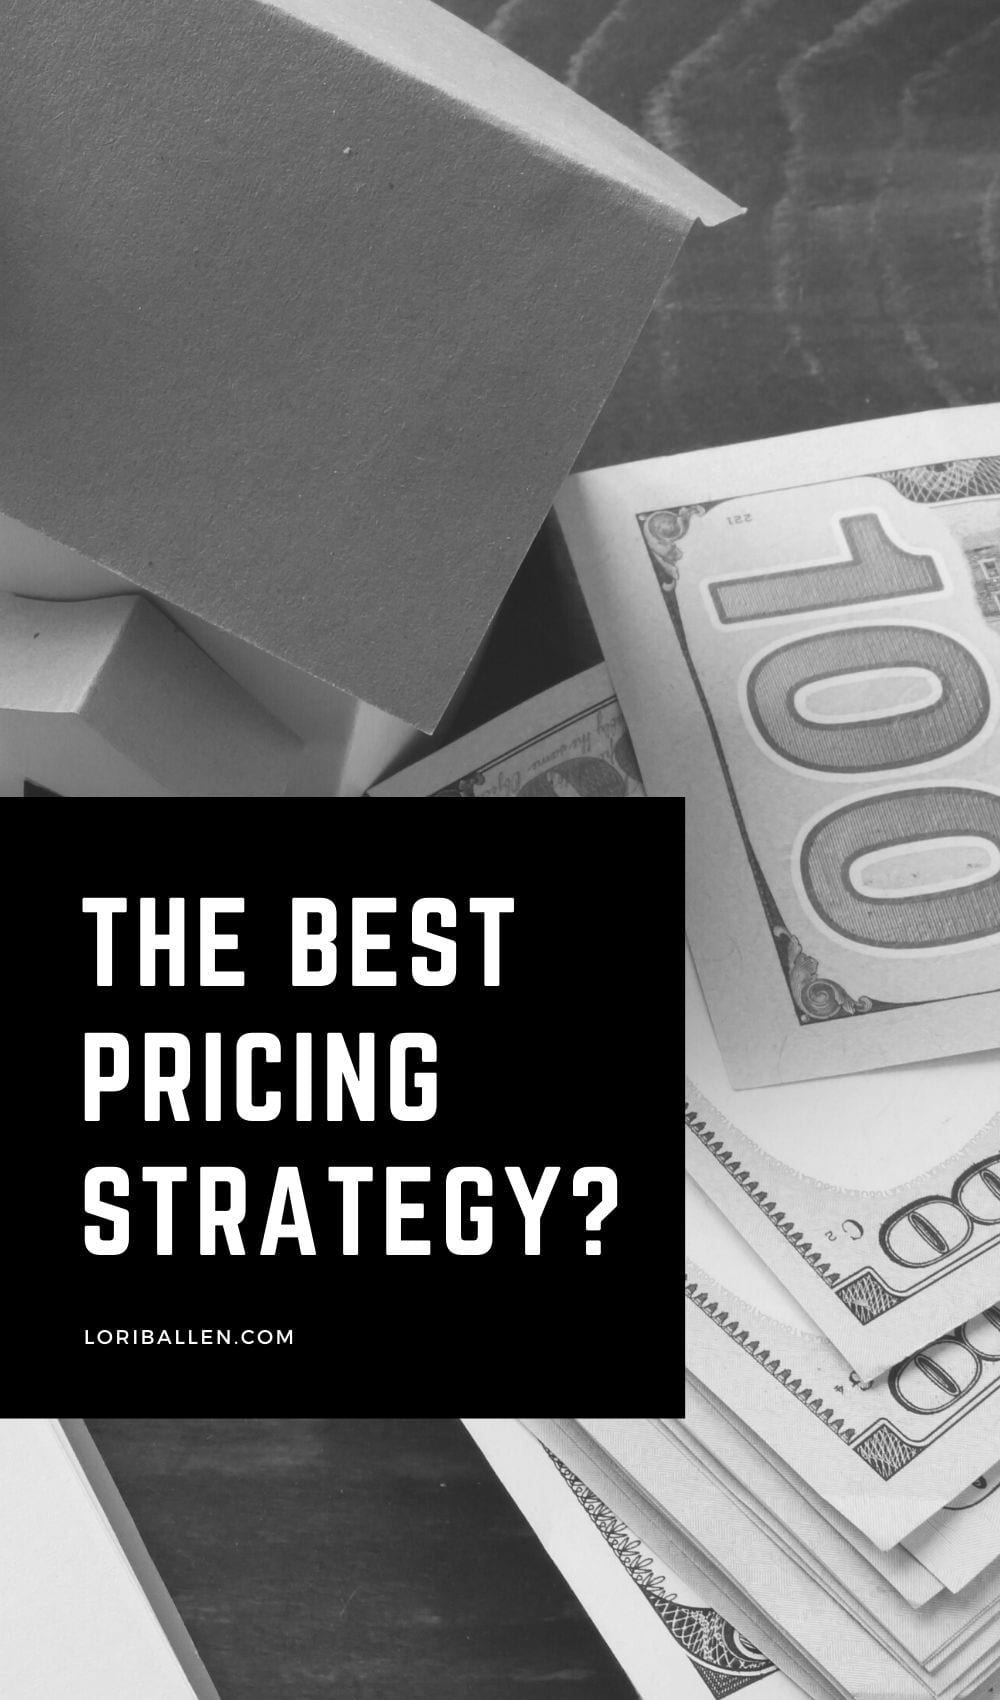 Should you use the 99 strategy, or go for rounded numbers when pricing a real estate listing? The best way to determine the best pricing strategy is to run a few tests of your own.